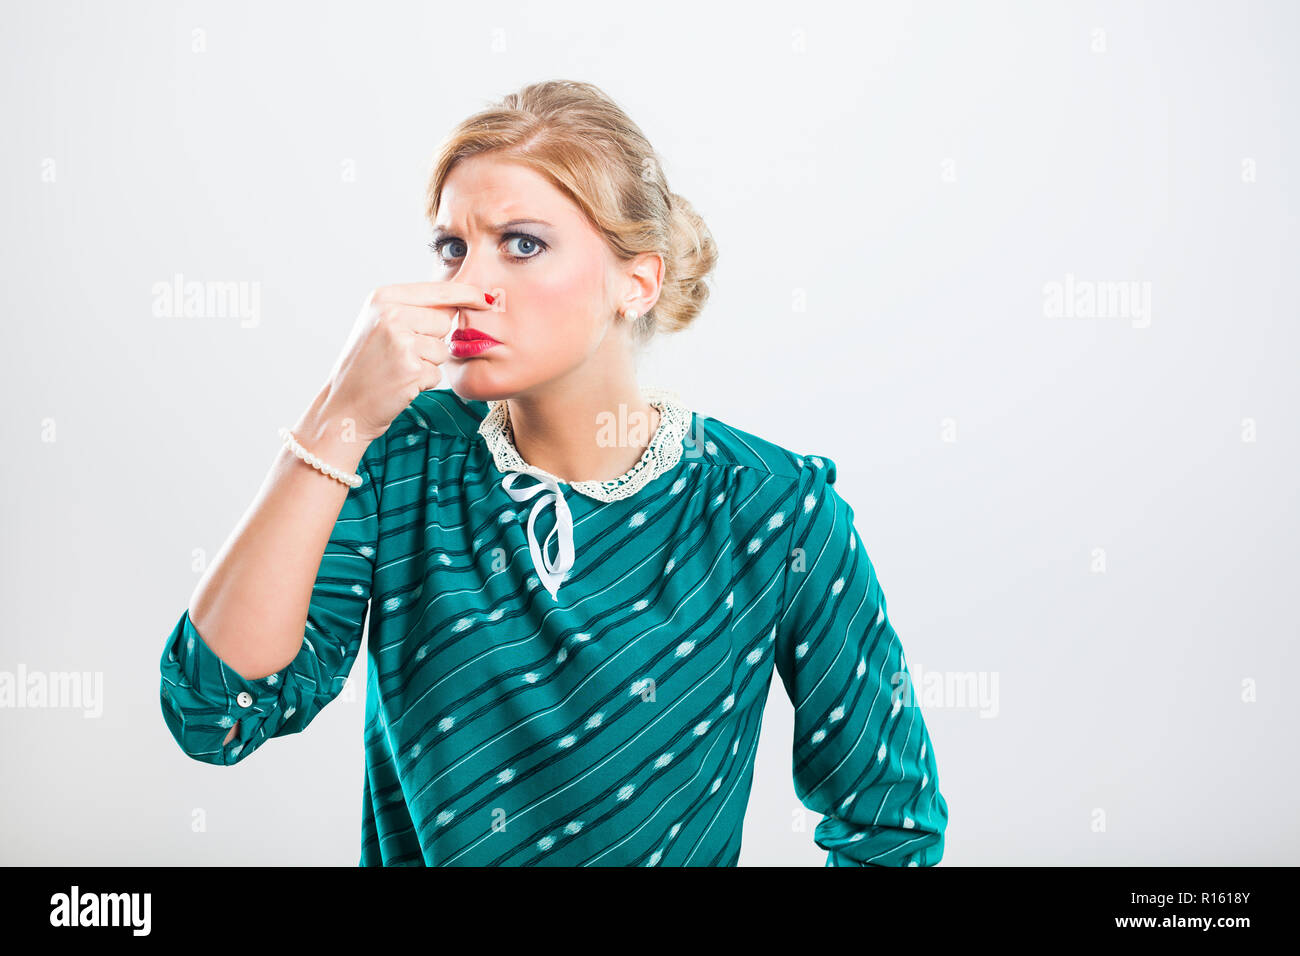 Unpleasant Smell - Stock Image